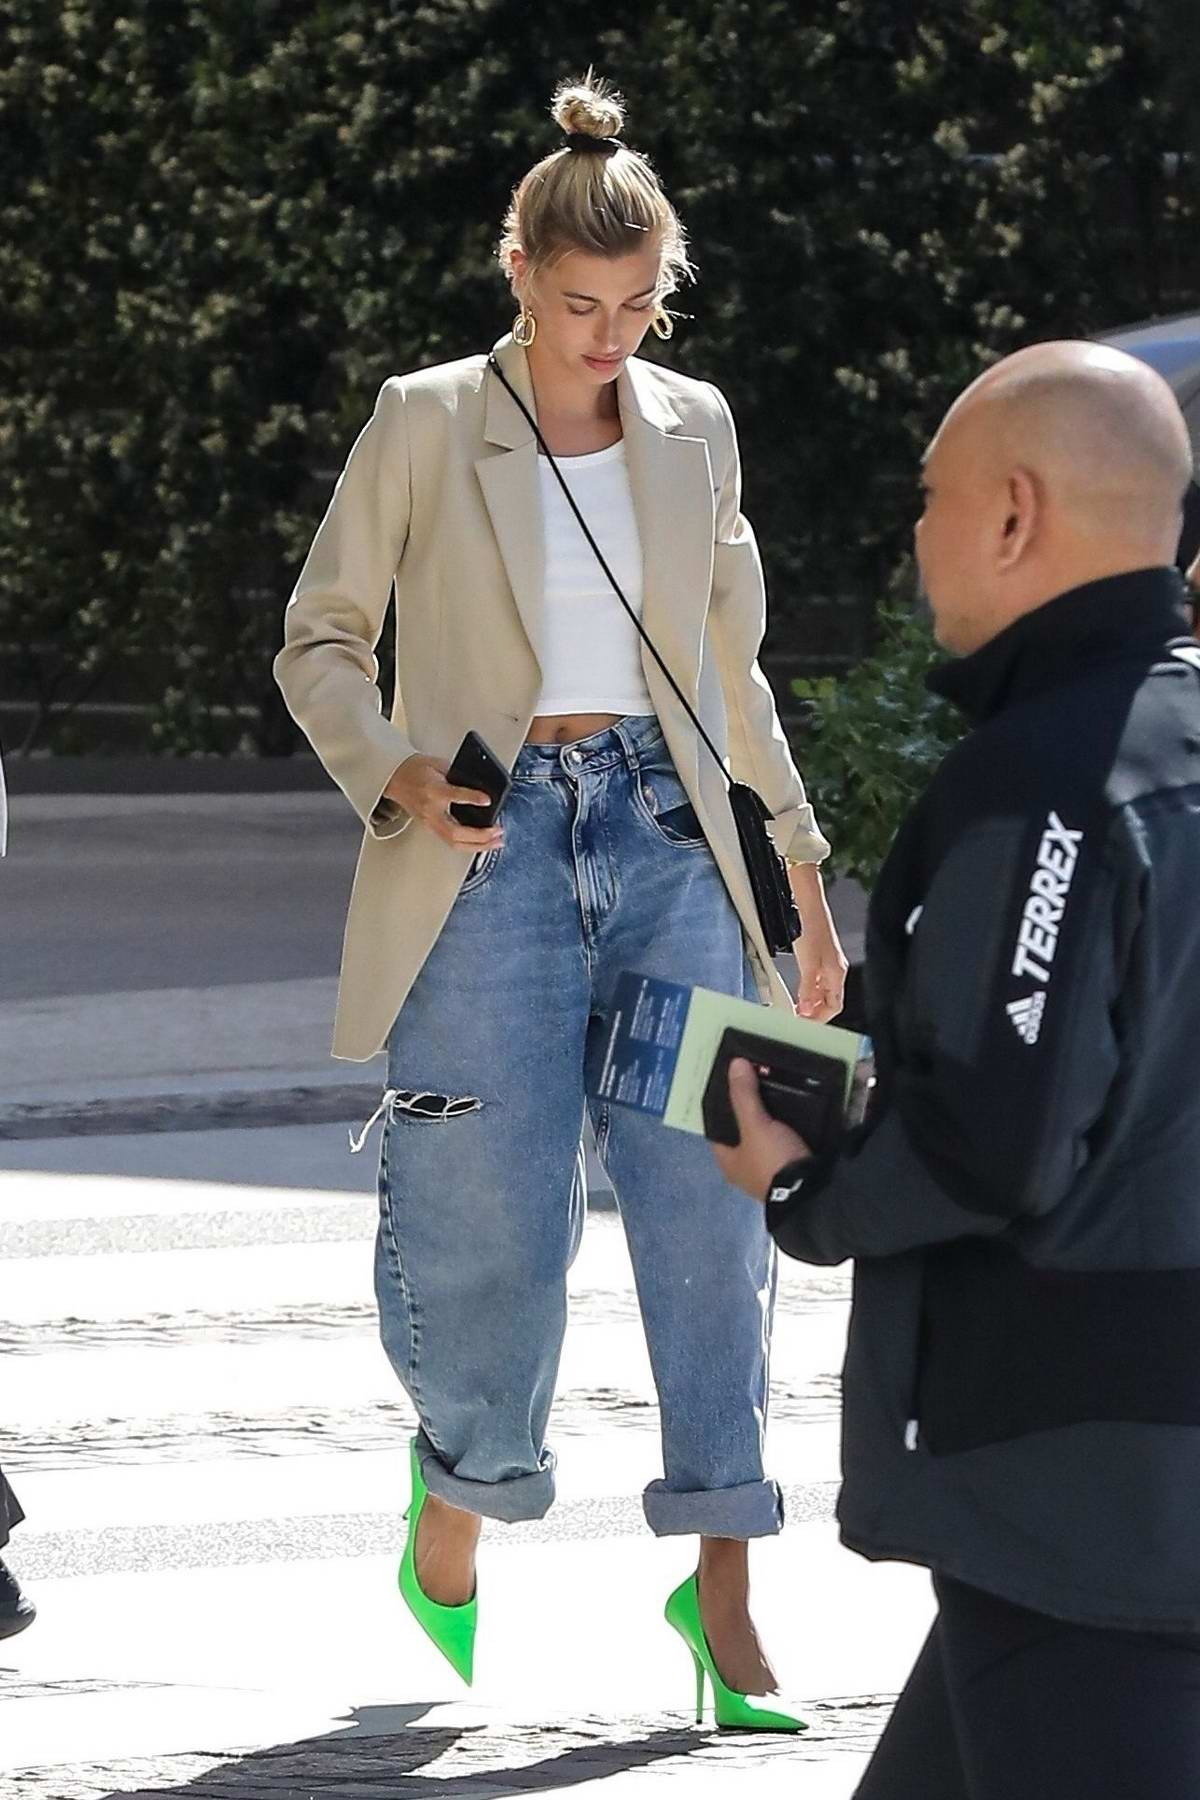 Hailey Baldwin Bieber is street chic as she drops off her car at Valet at the Waldorf Hotel in Beverly Hills, Los Angeles